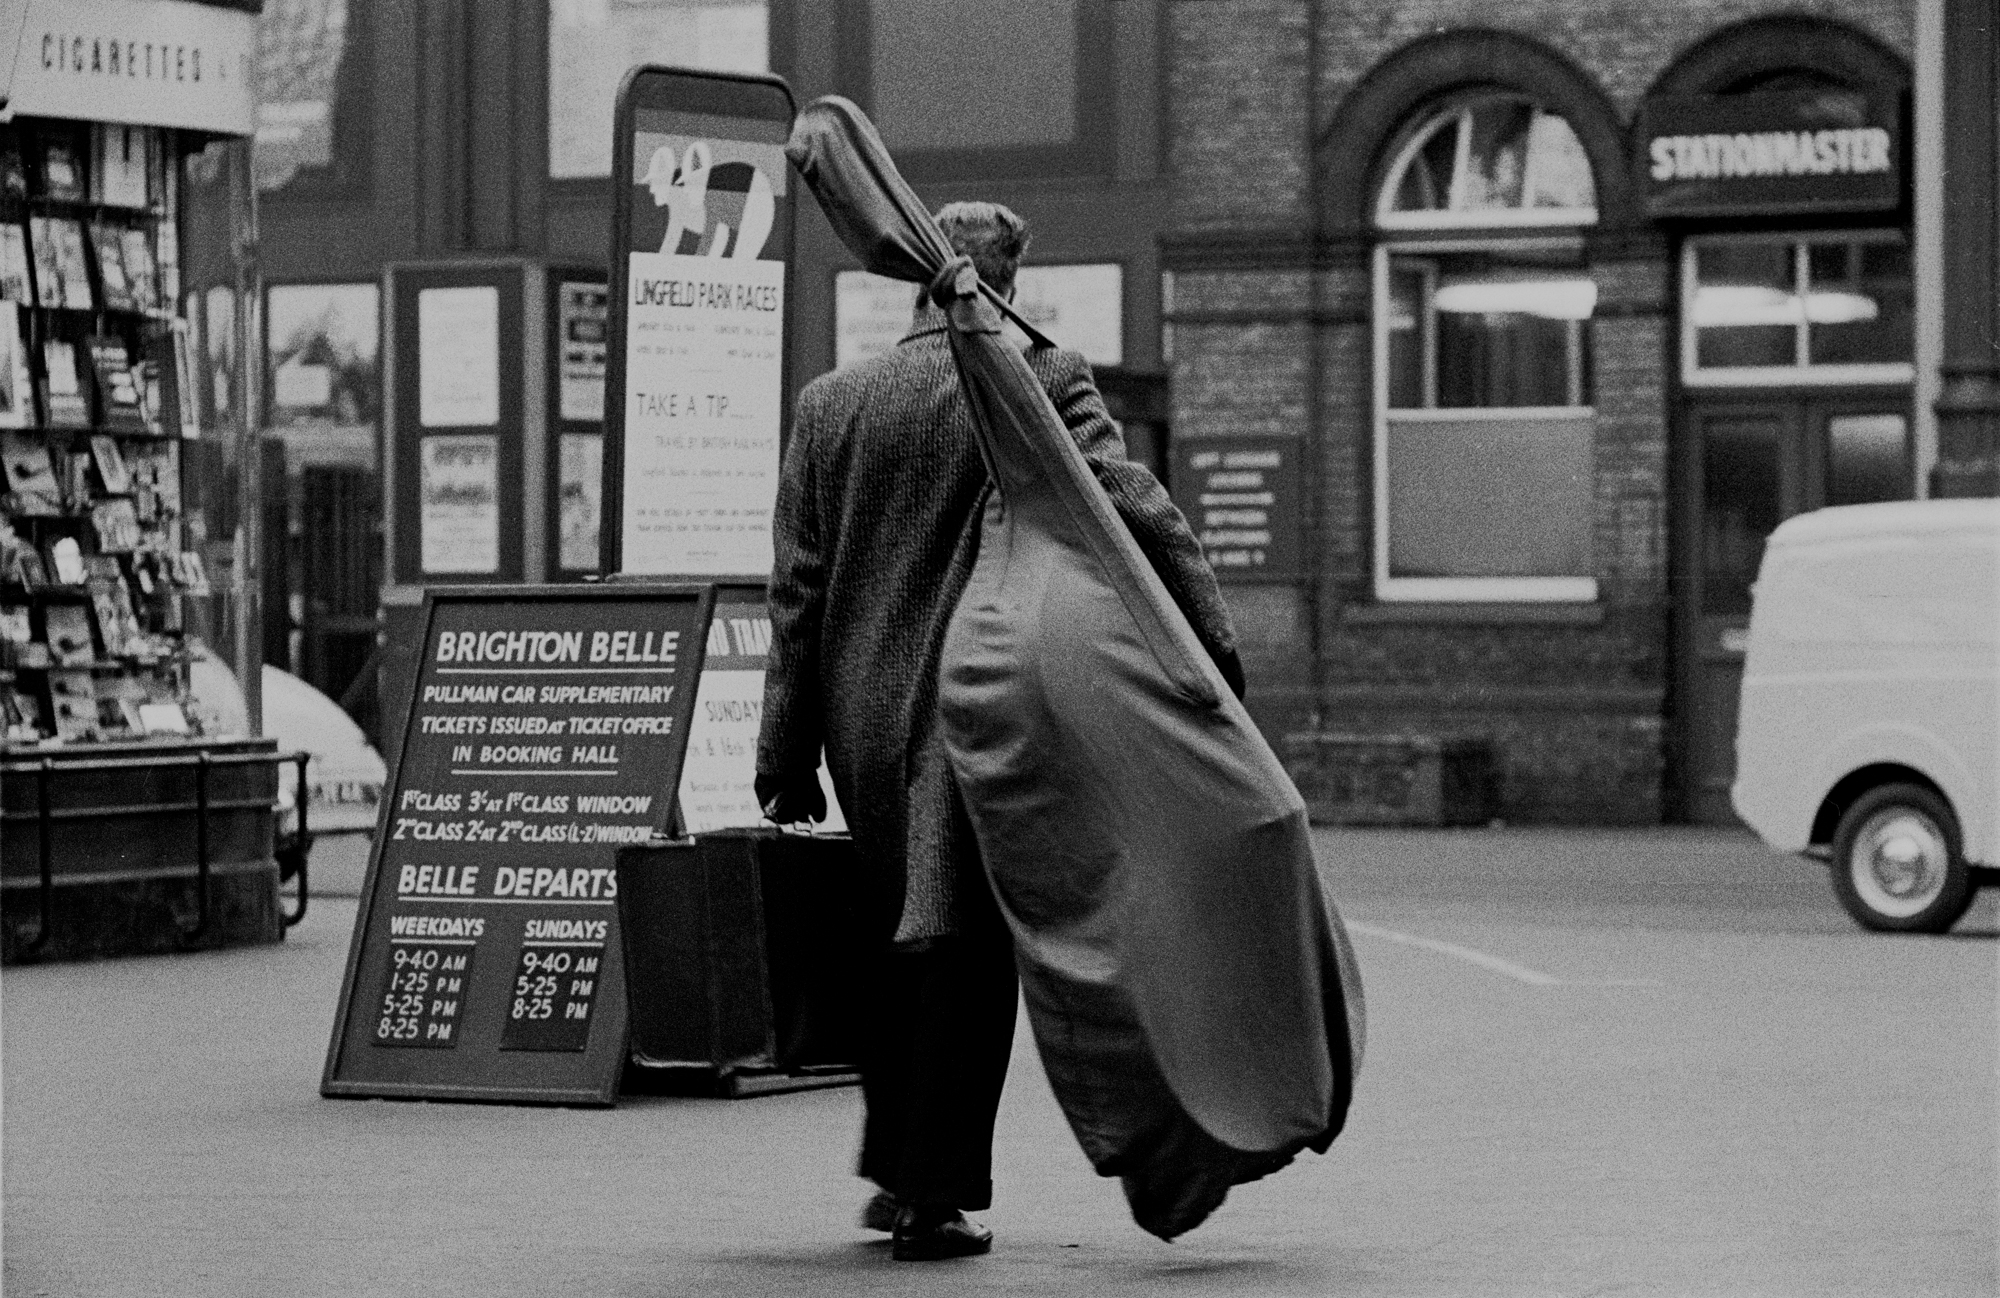 AT THE SEASIDE - Man with Double Bass - Brighton Station - 1959